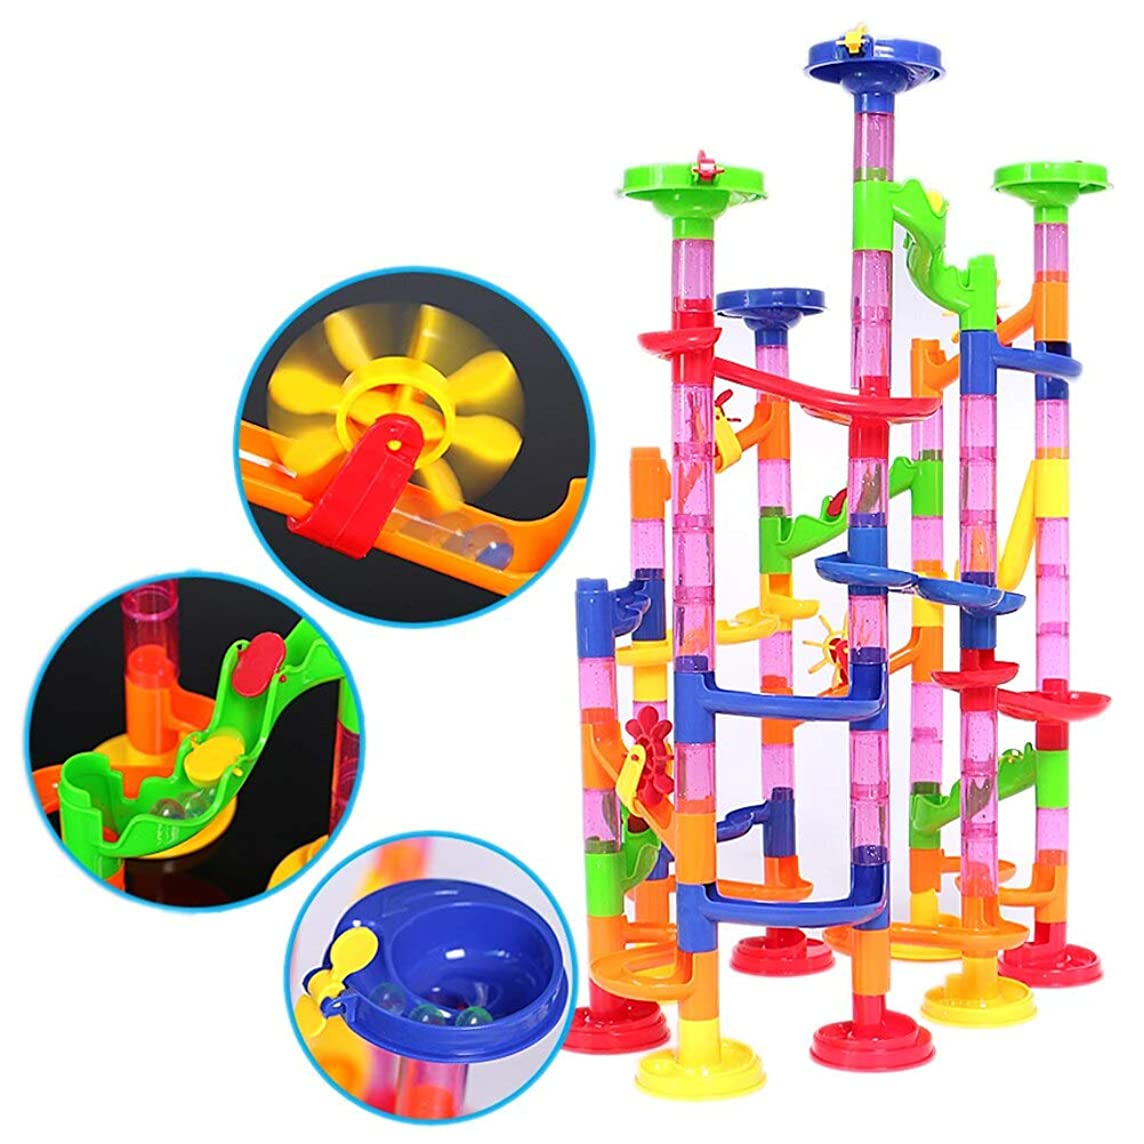 Educational Toys - 1 Set Pipeline Type Puzzles Maze Learning Education Toys Iq Trainer Game Gift Children Colorful - Speech Bulk Newborn Space Preschool Electronics Snap Counting Stacking